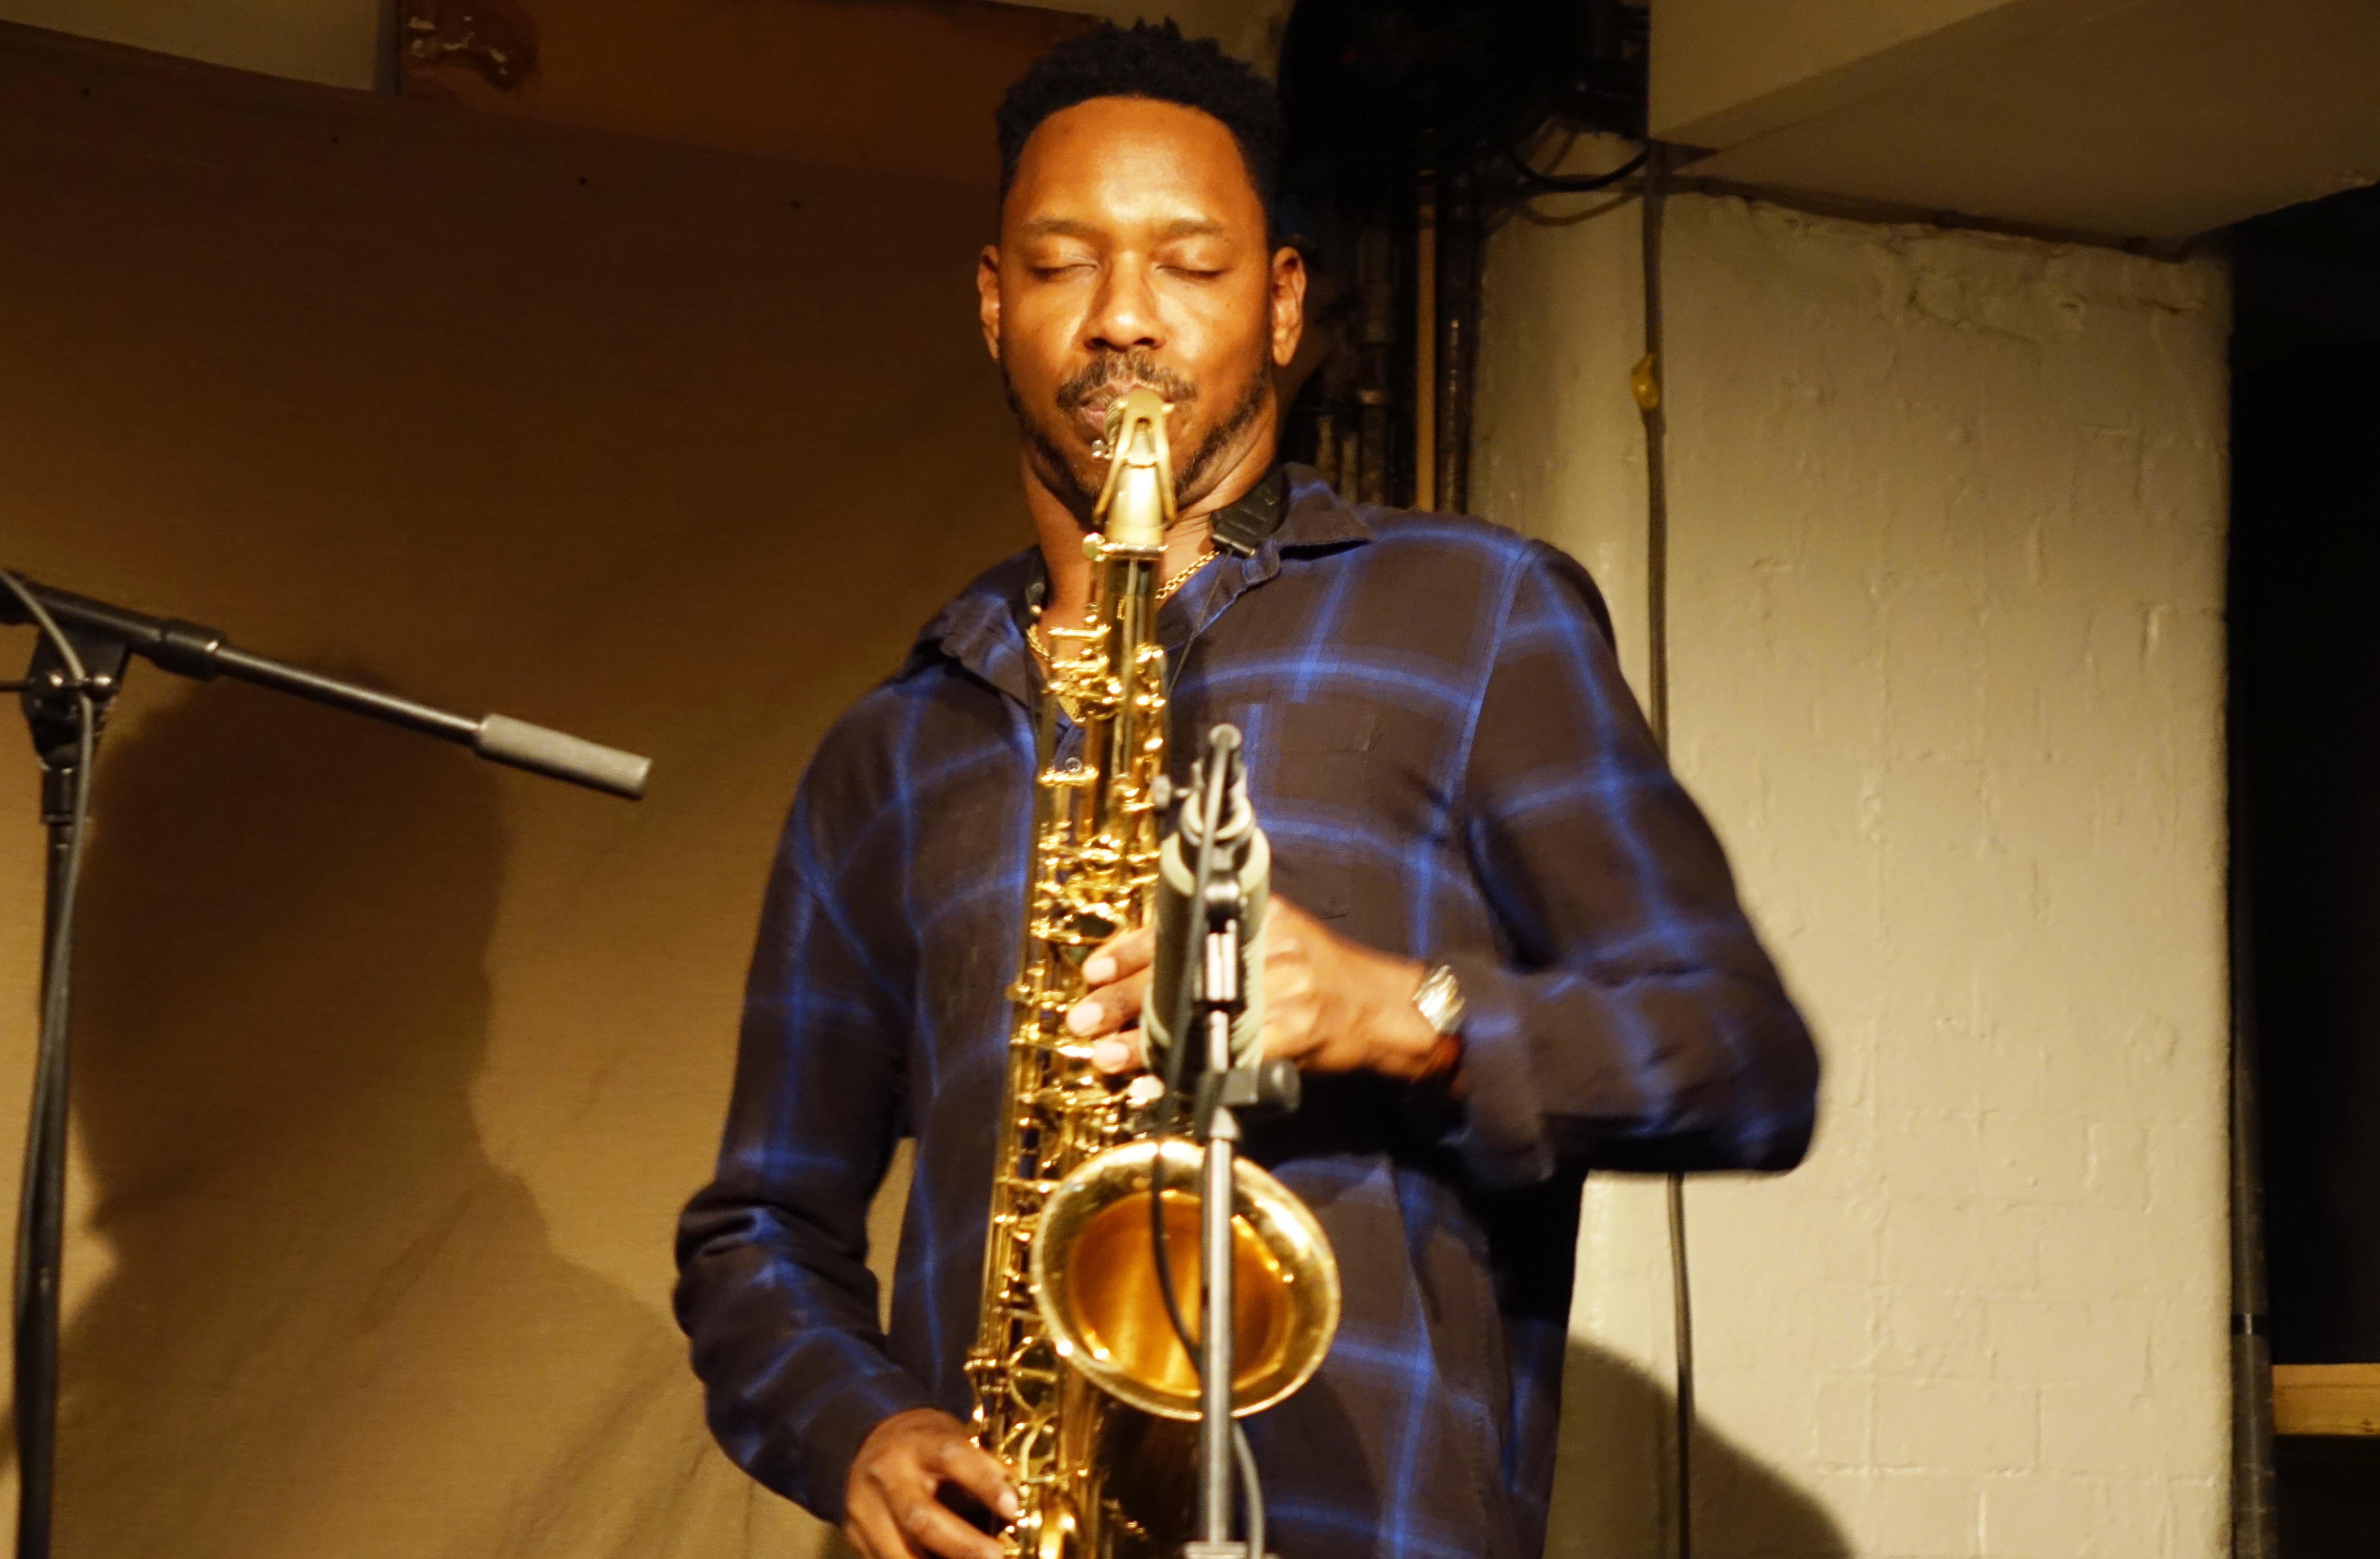 Shabaka Hutchings at Cafe Oto, London in April 2018